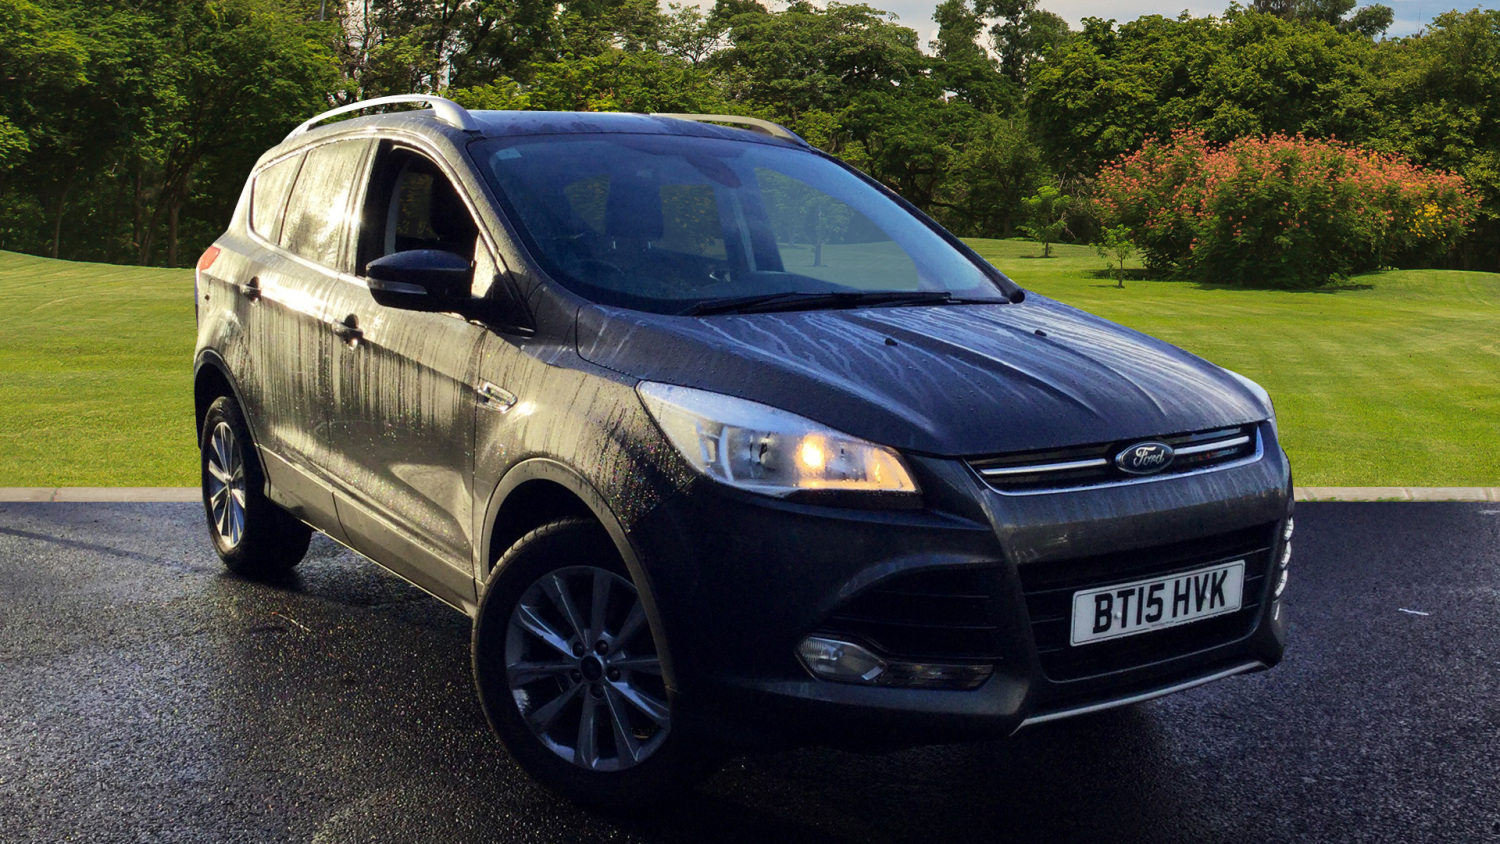 buy online ford kuga 2 0 tdci 150 titanium 5dr 2wd diesel estate for sale bristol street motors. Black Bedroom Furniture Sets. Home Design Ideas